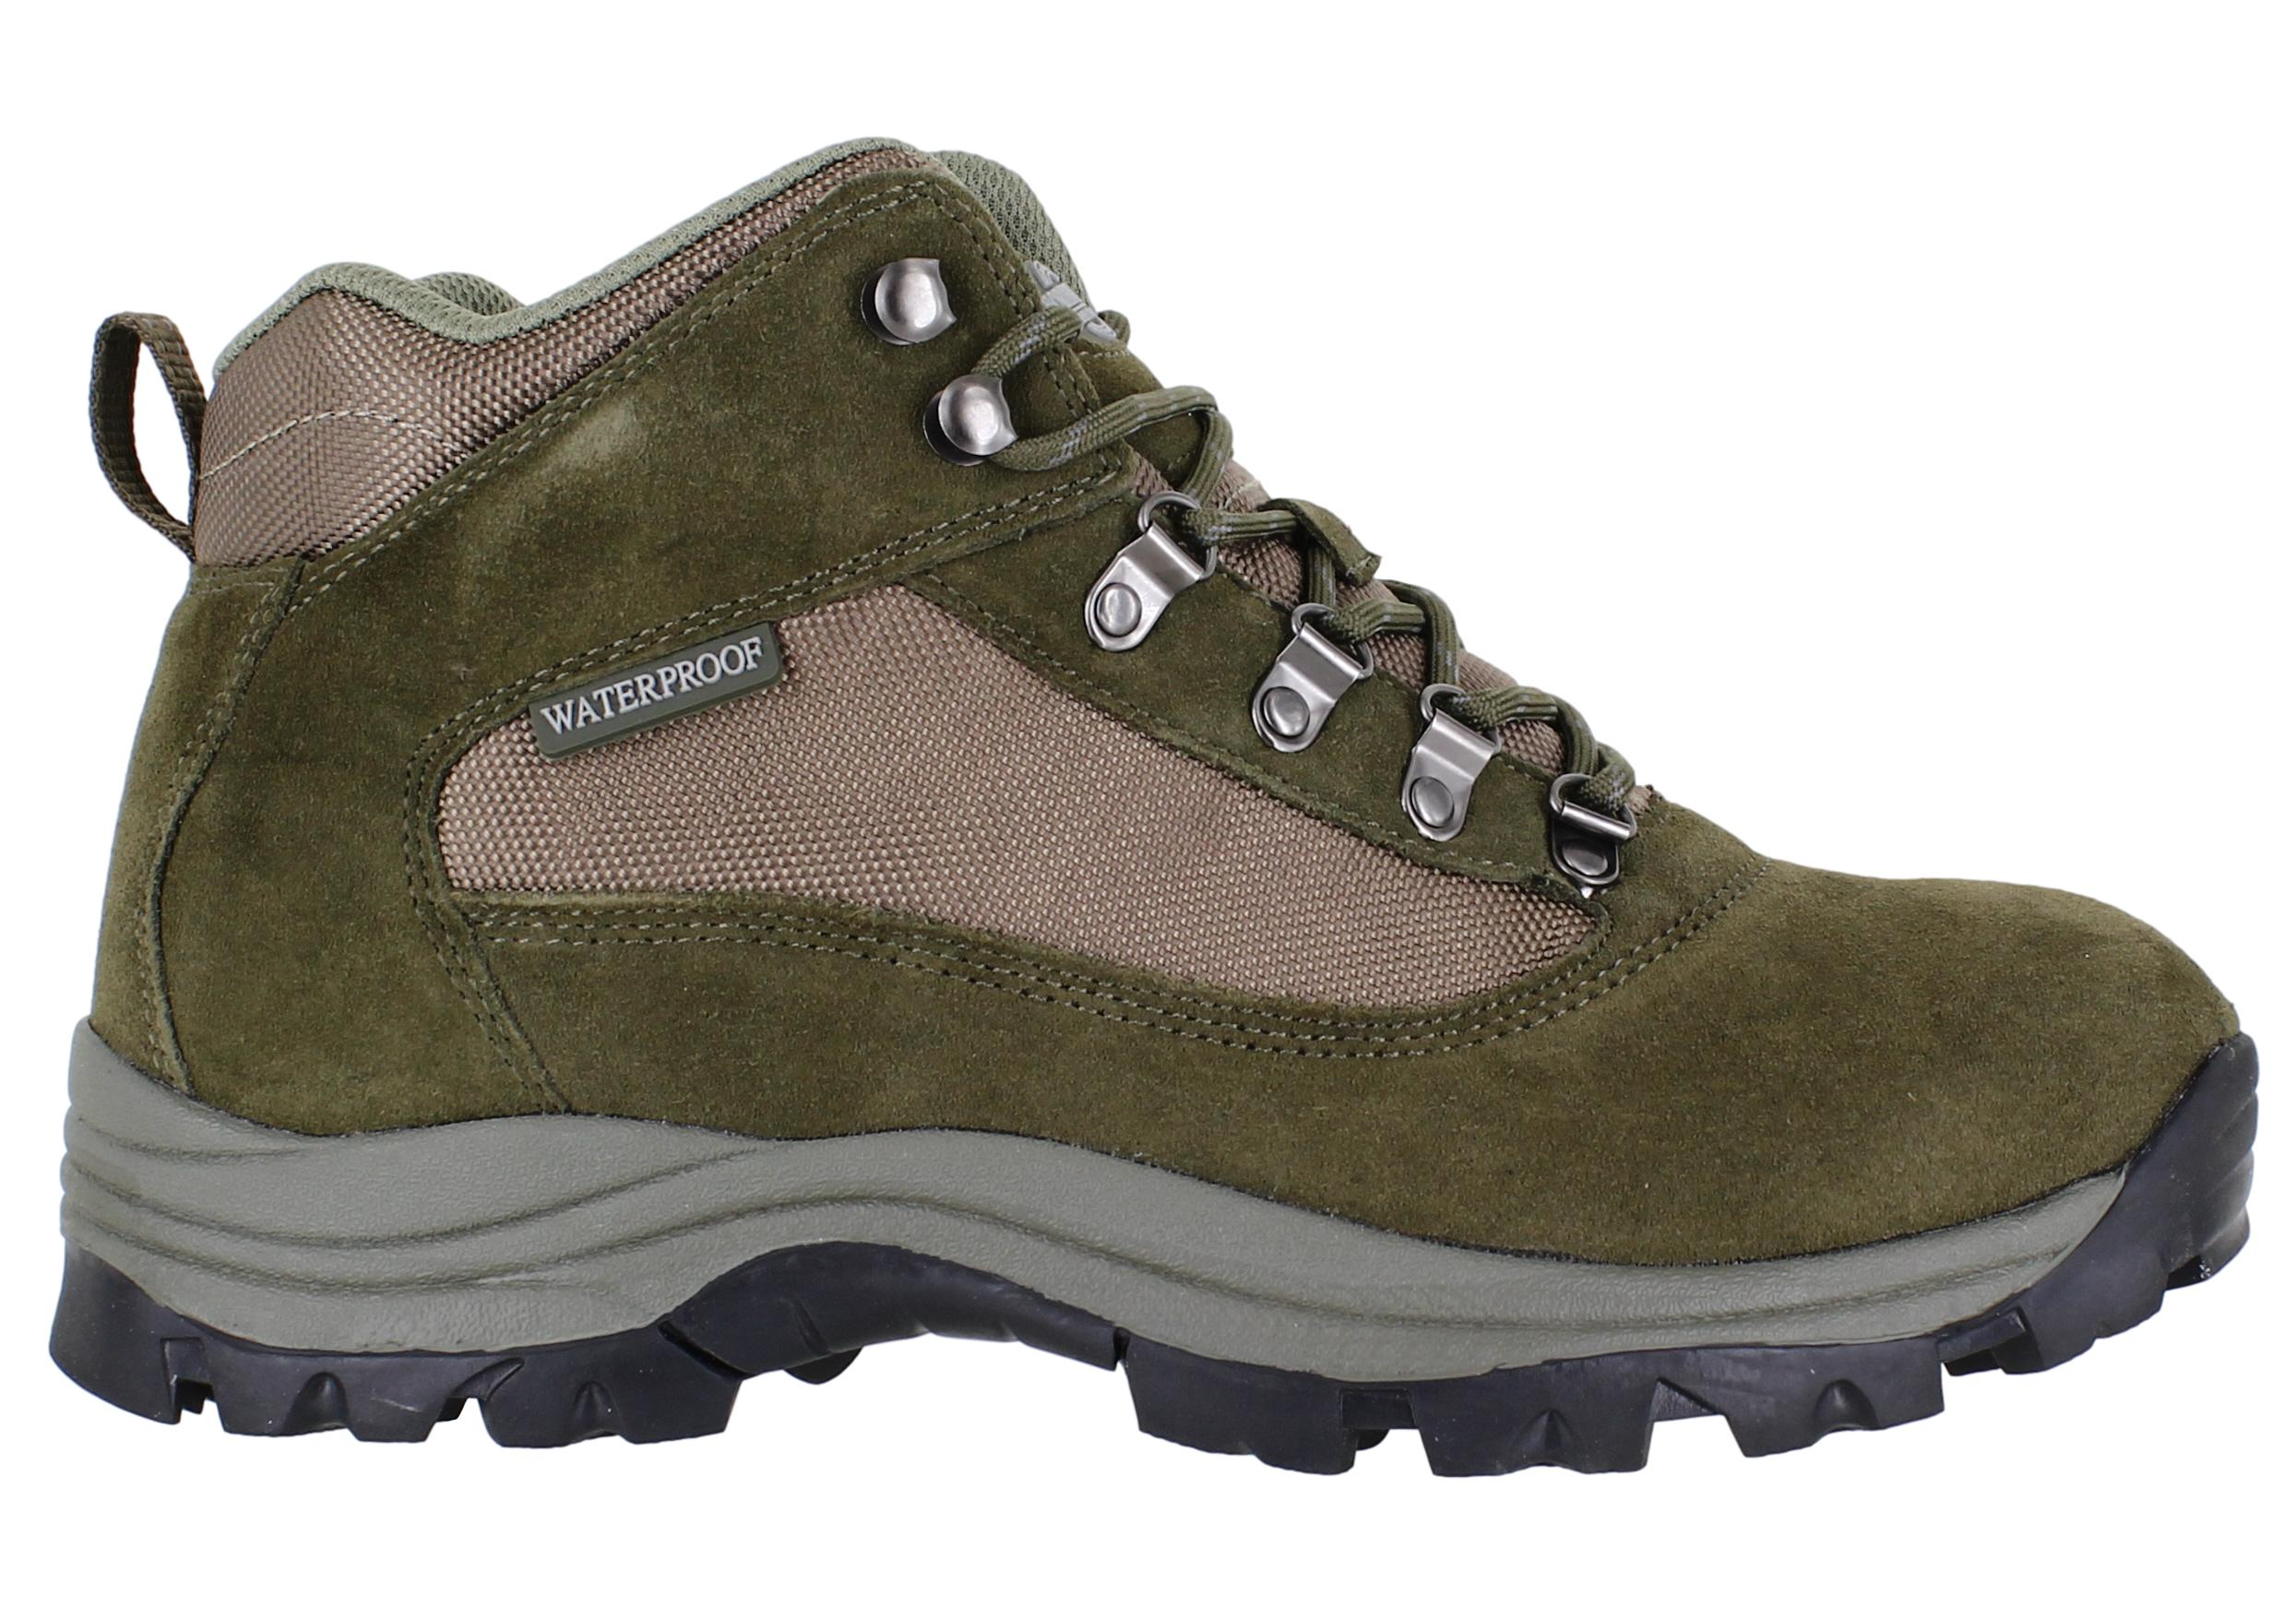 24146f89abf Details about Mens Northwest Terrain 2 Waterproof Lace Up Walking Hiking  Boots Sizes 7 to 12